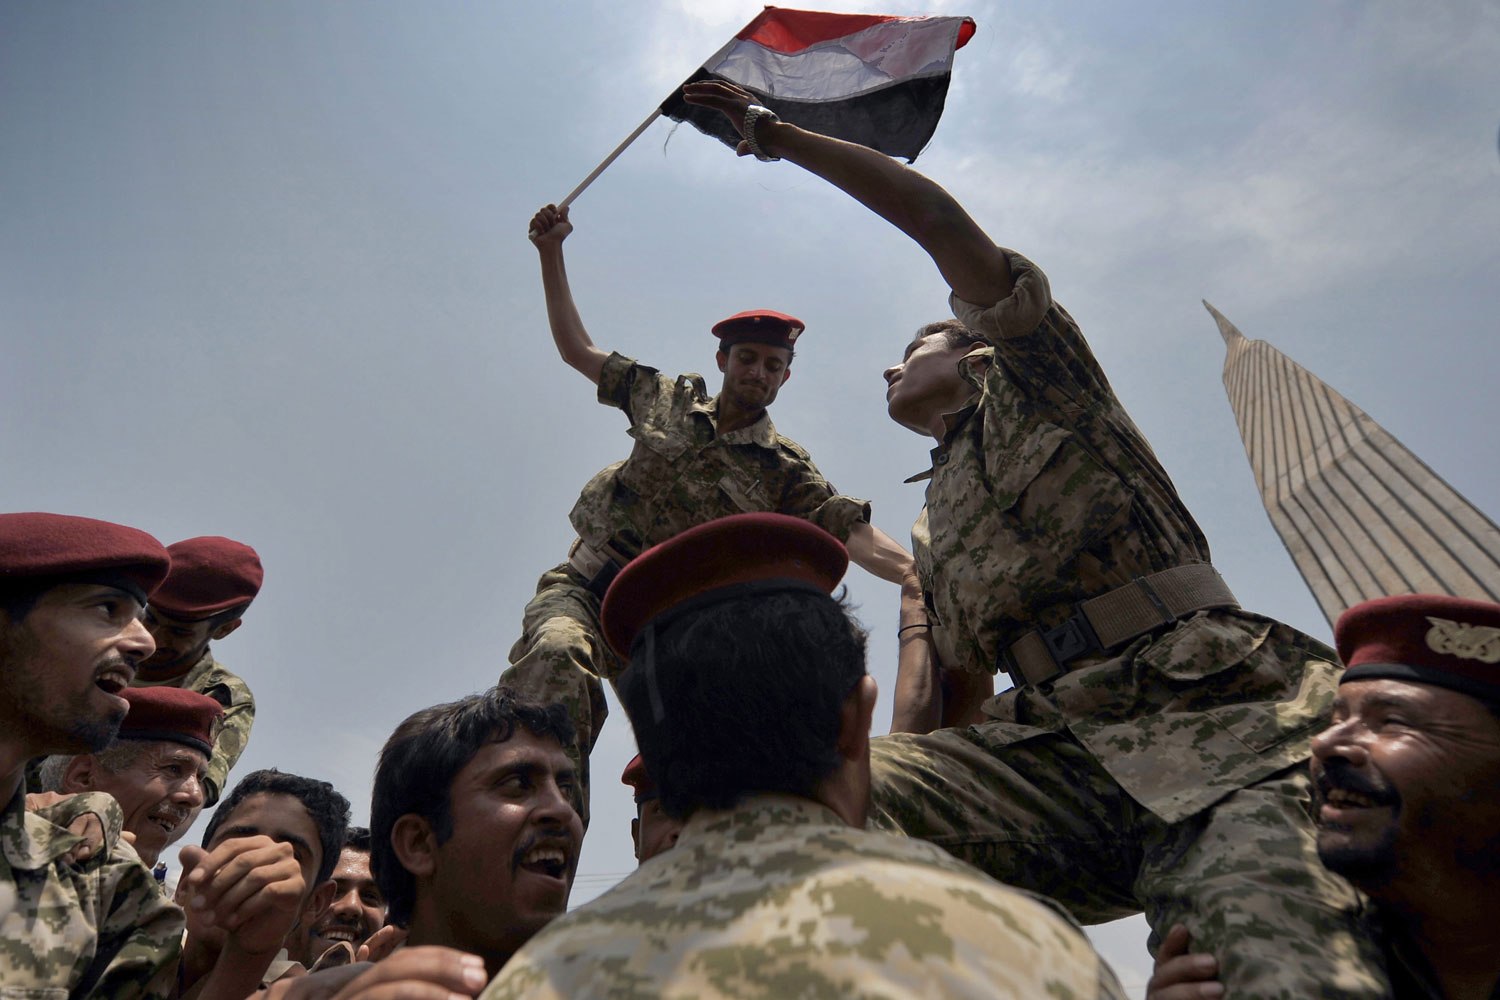 July 31, 2011. Yemeni soldiers hold up a Yemeni flag as they join anti-government protesters during a protest against the 33-year regime of  President Ali Abdullah Saleh, in Sana'a, Yemen.